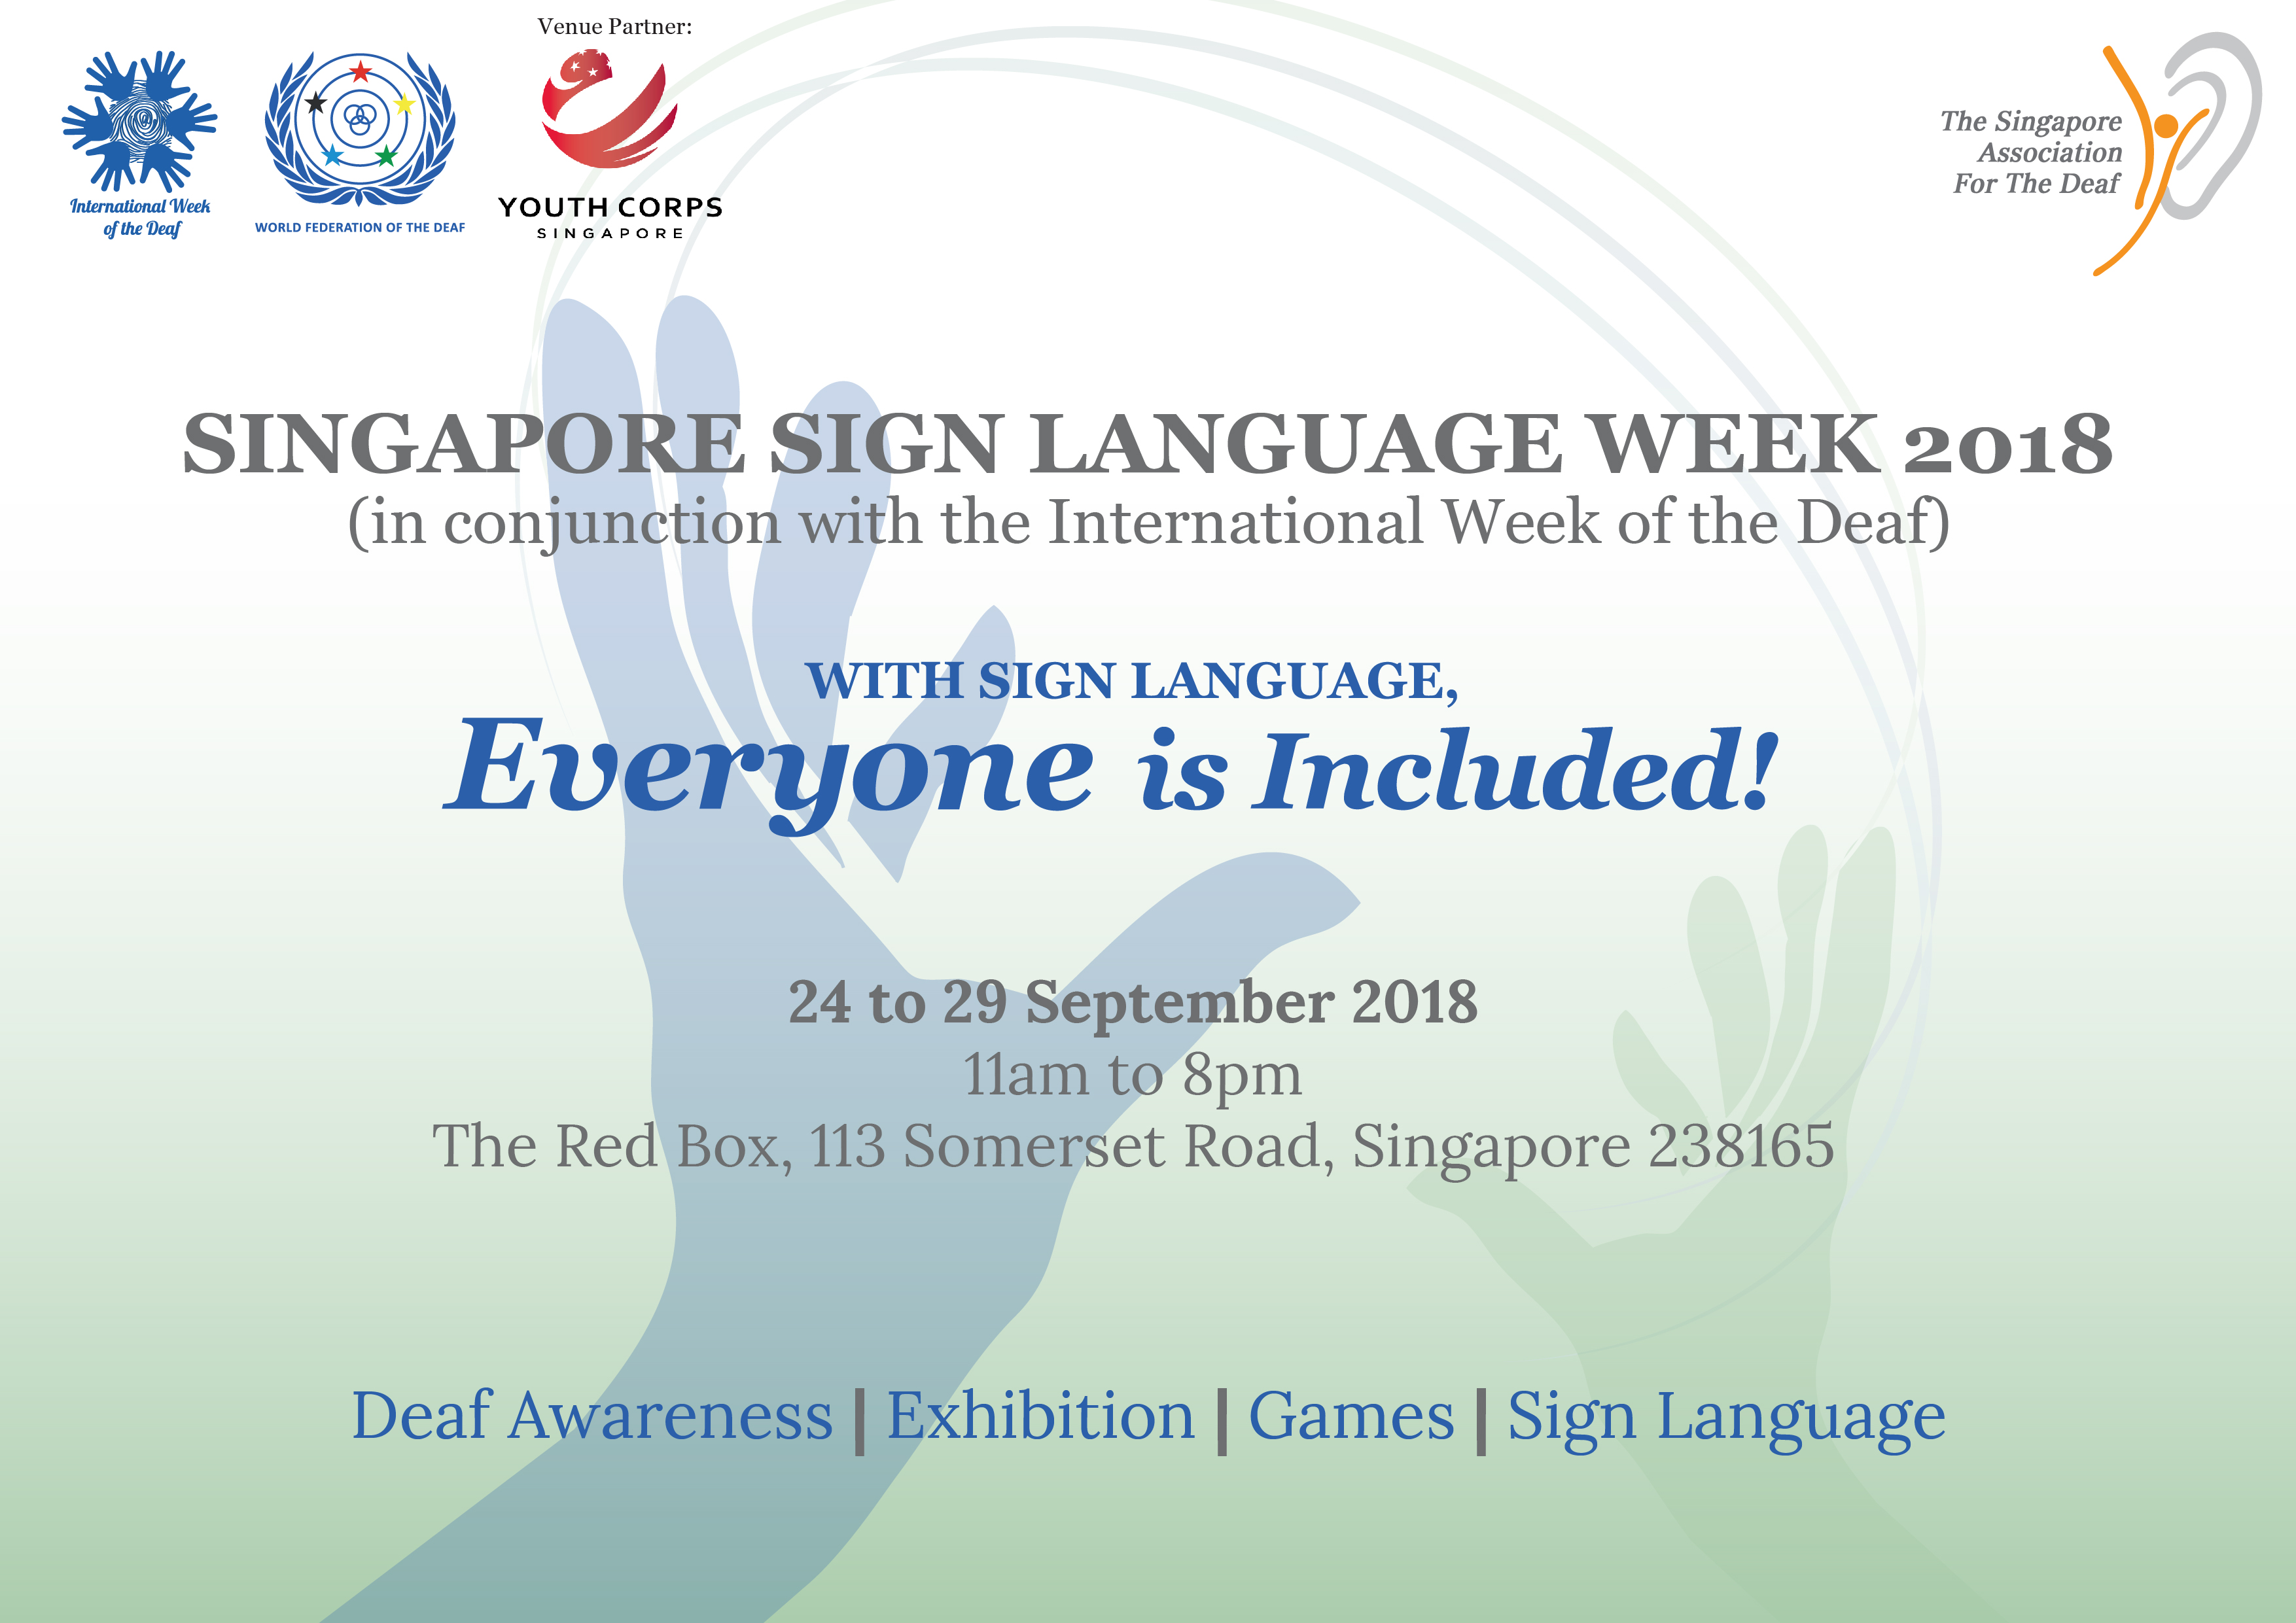 Singapore Sign Language Week The Singapore Association For The Deaf